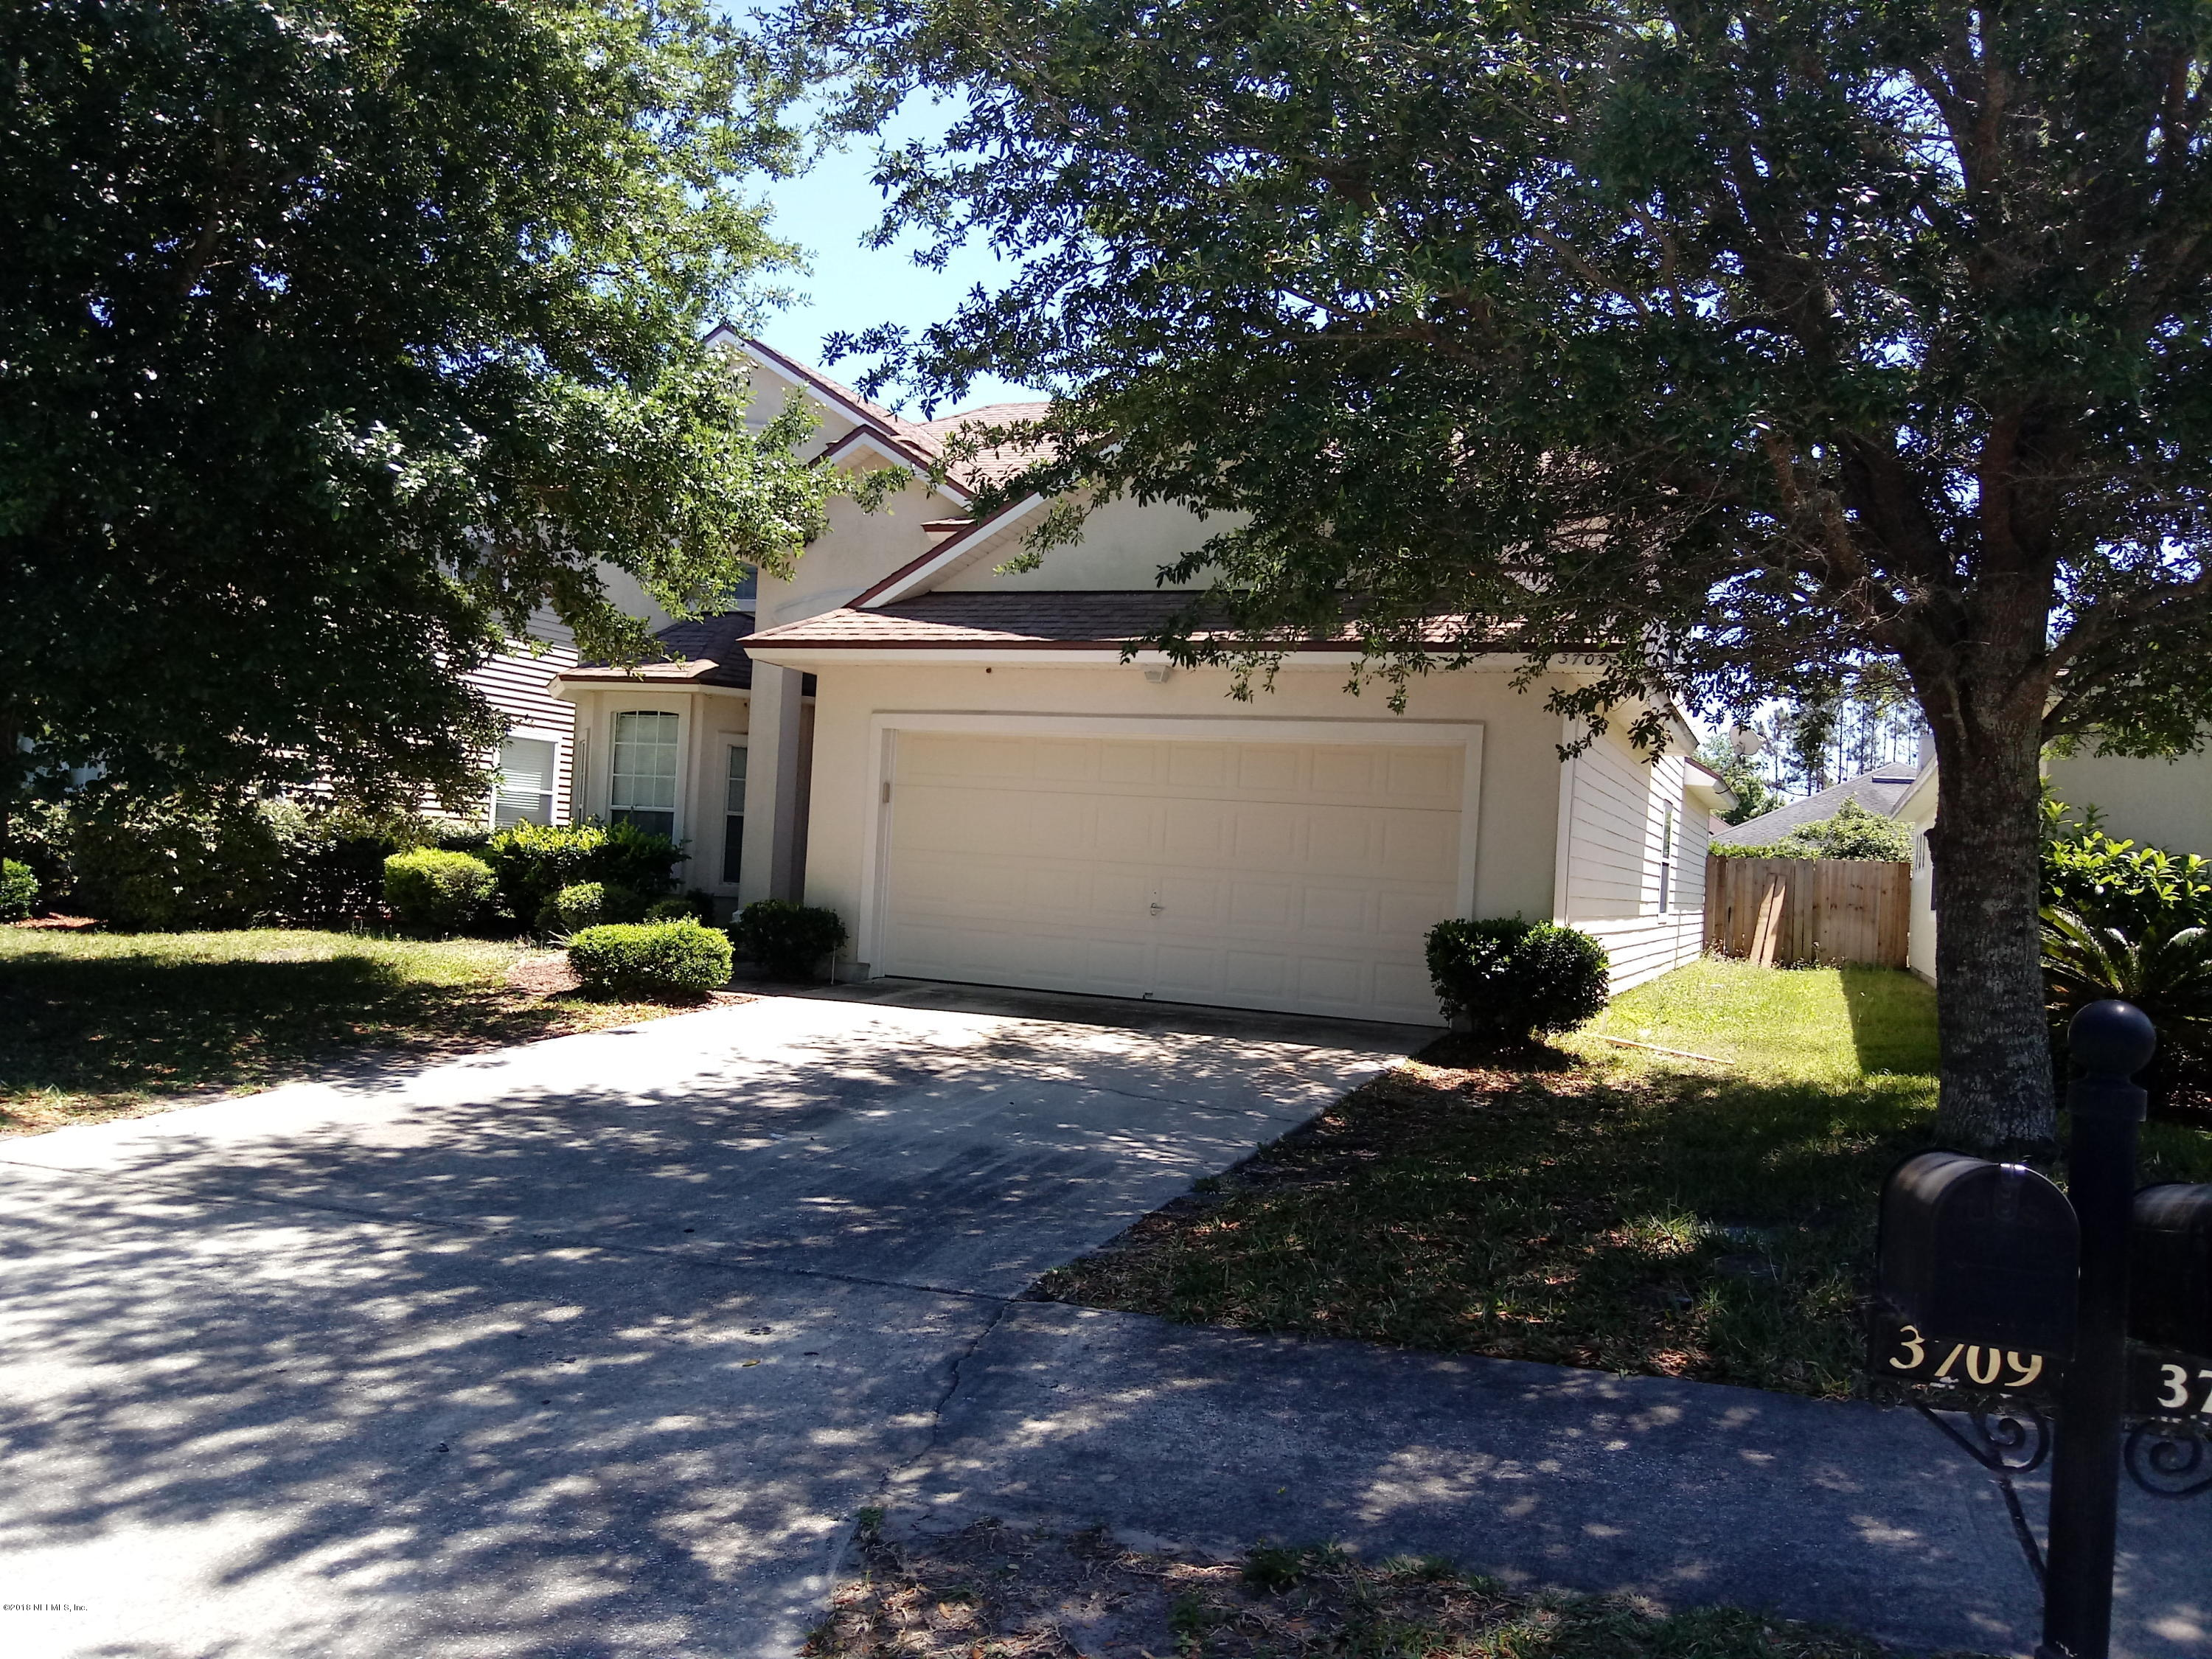 3709 MILL VIEW, ORANGE PARK, FLORIDA 32065, 4 Bedrooms Bedrooms, ,2 BathroomsBathrooms,Residential - single family,For sale,MILL VIEW,933659